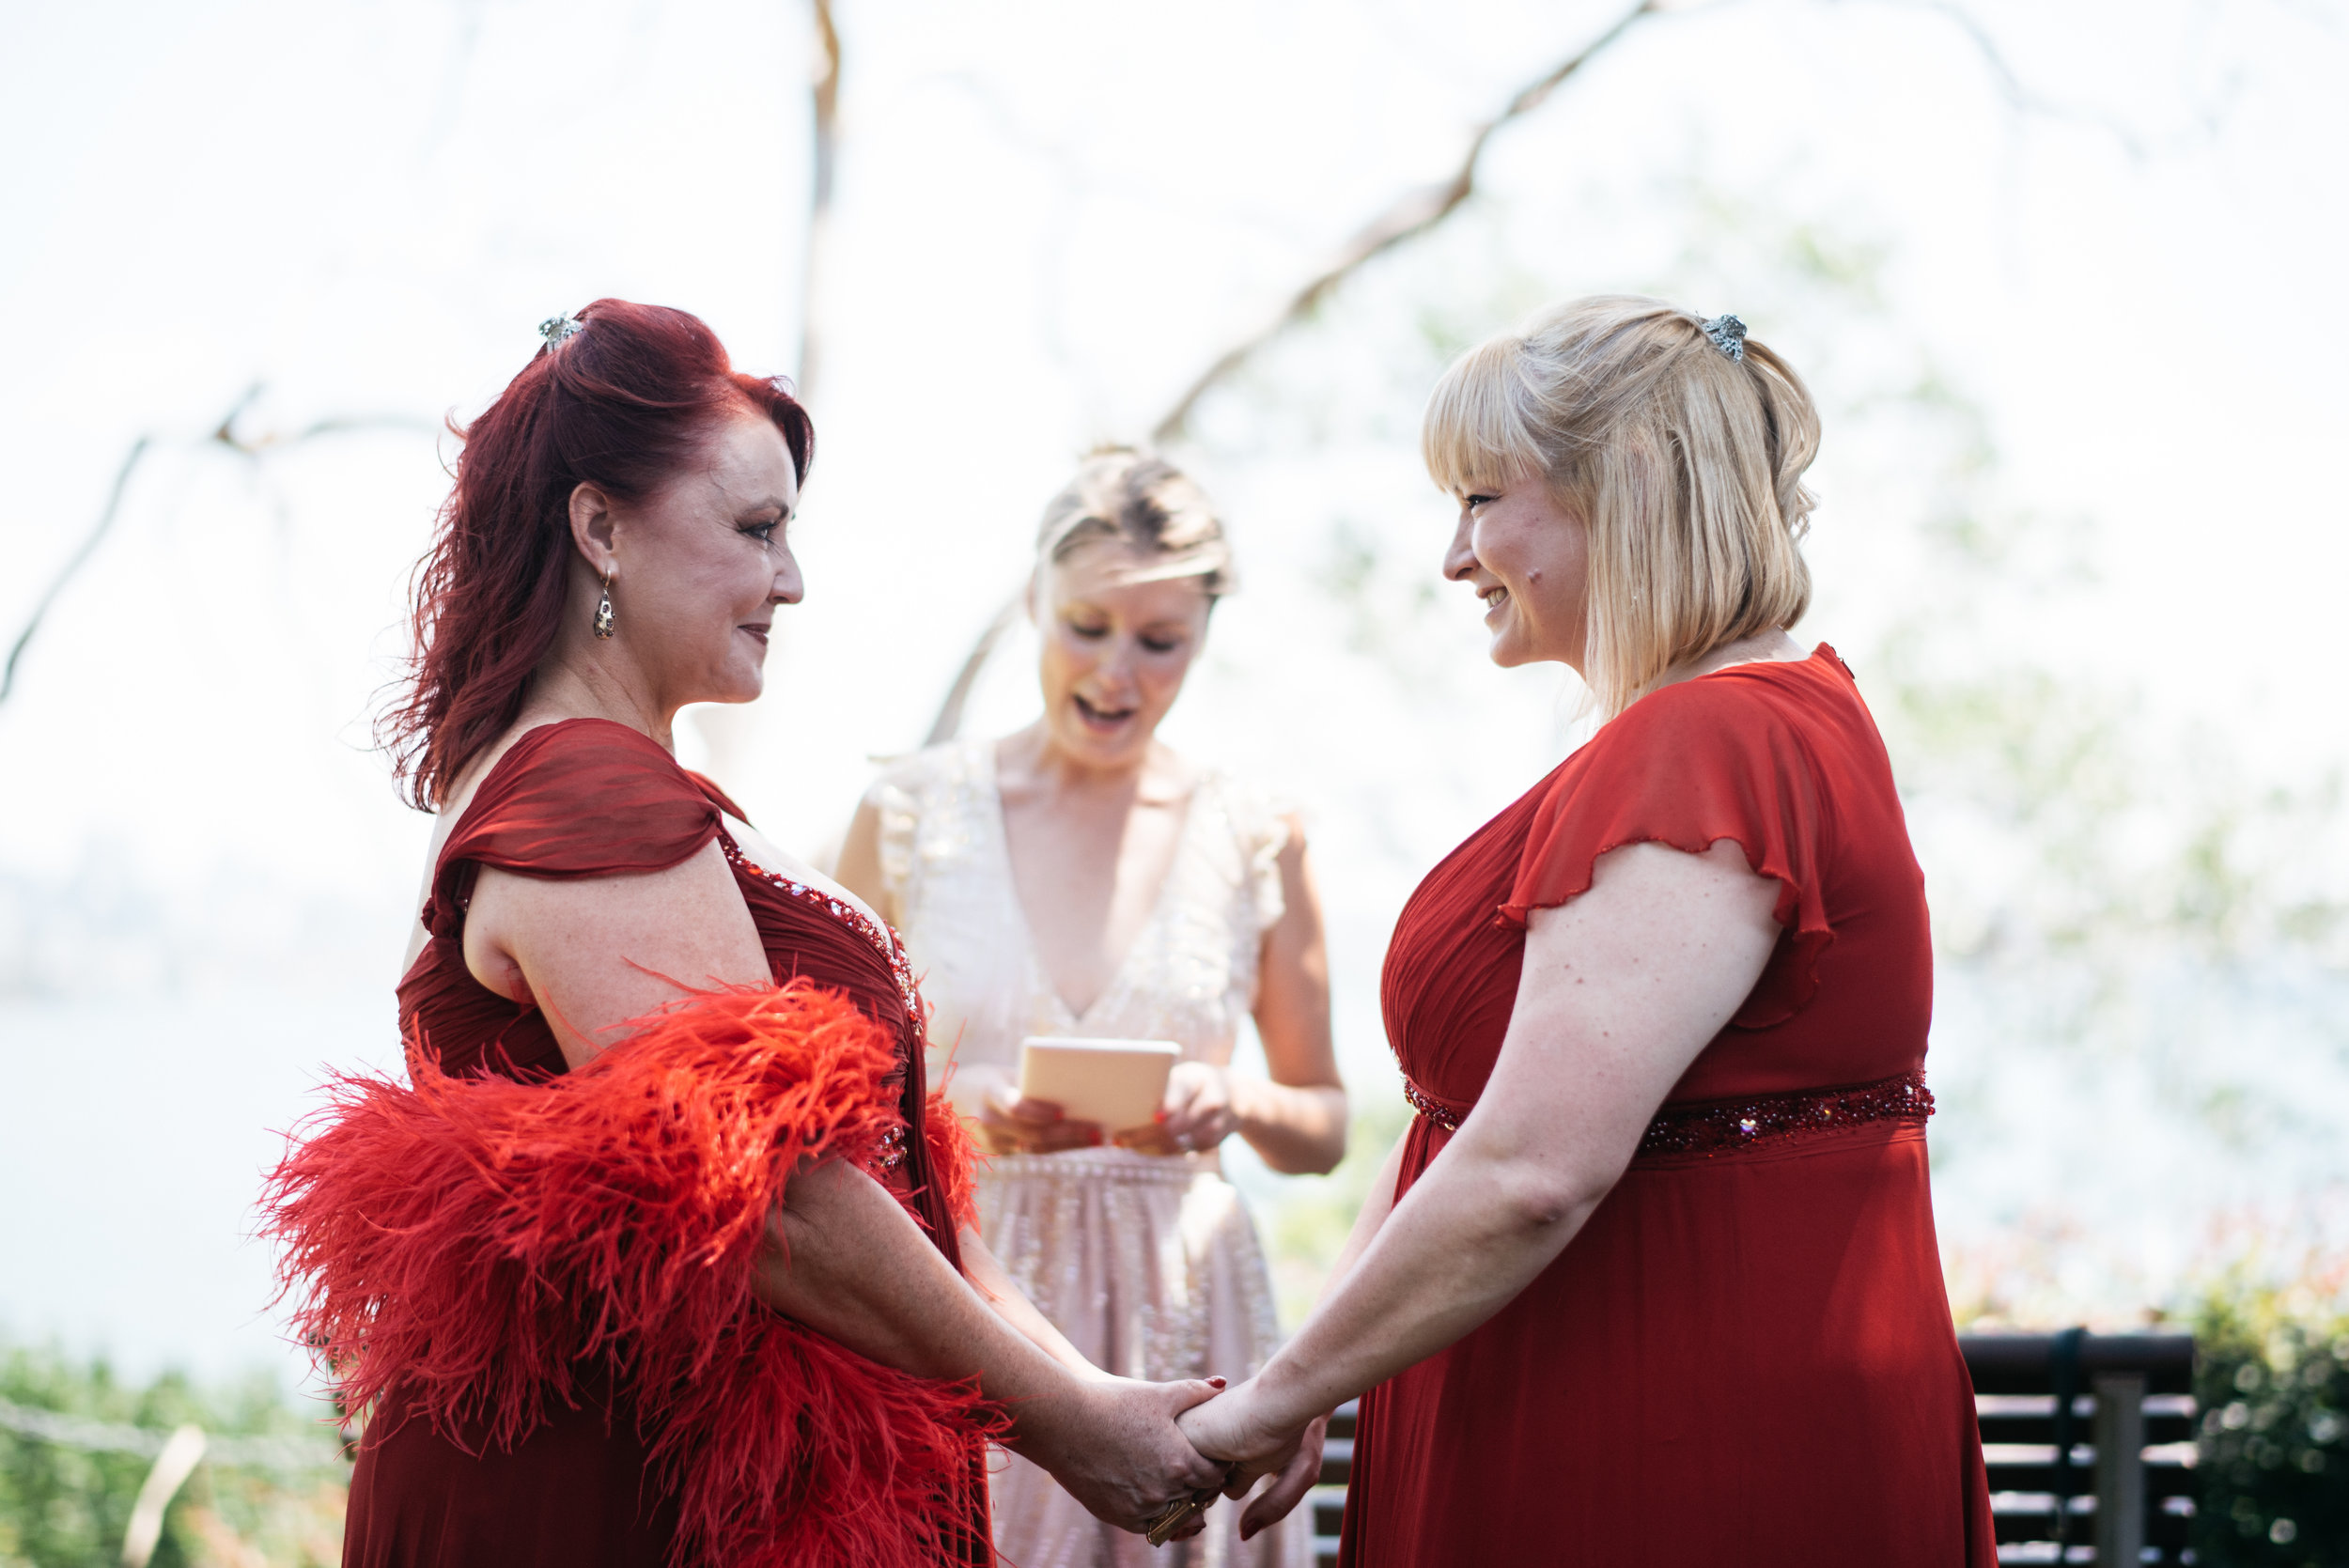 Marion & Camilla - You know we felt so good about this ceremony because we were in your hands. You truly saved the best for us. It was a magical ceremony and you rock at celebrating same sex love ❤️